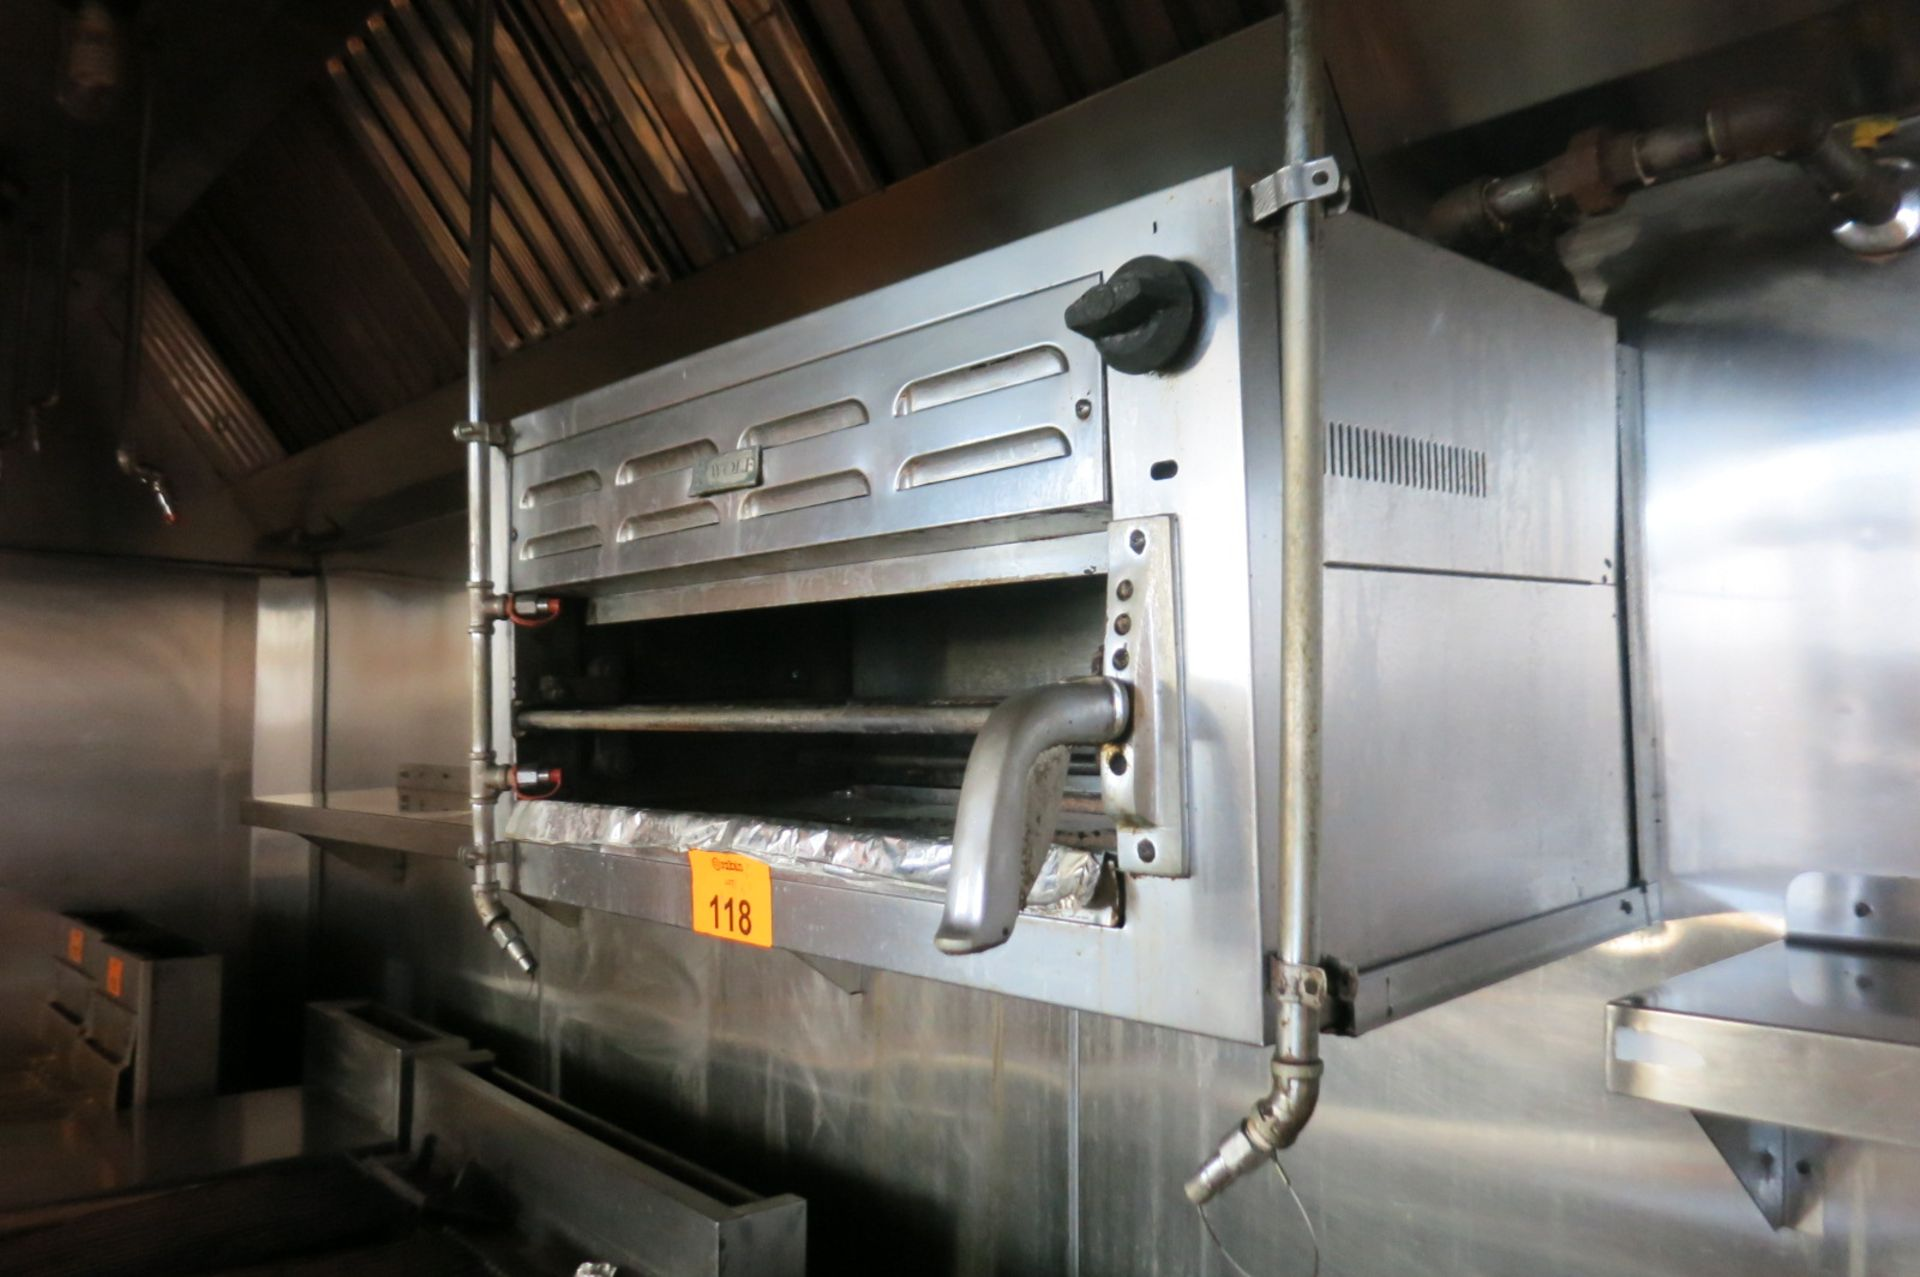 Gas Broiler - Image 2 of 2